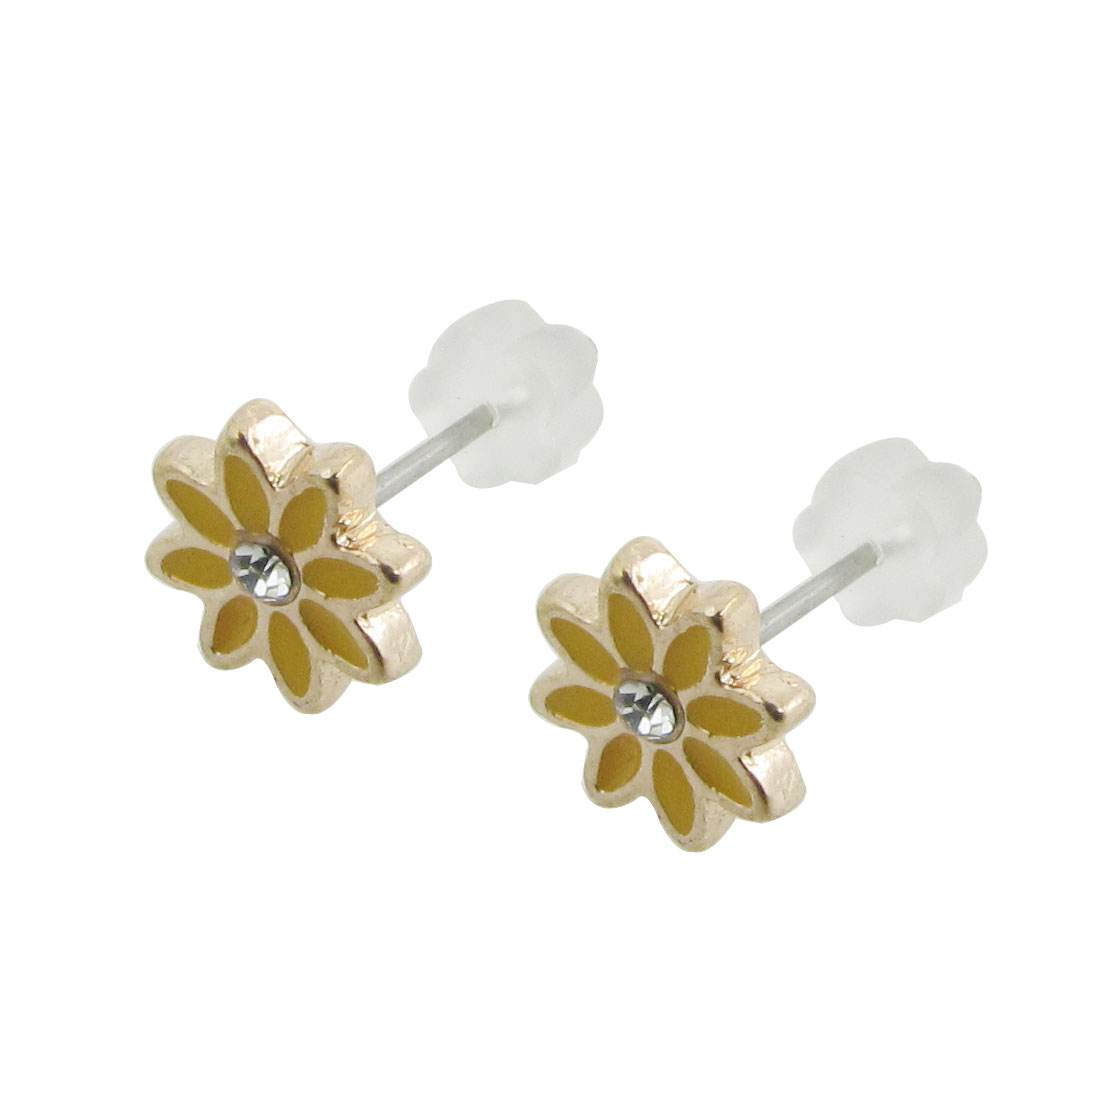 2 Pcs Yellow Flower Shape Stud Pierced Earrings for Lady